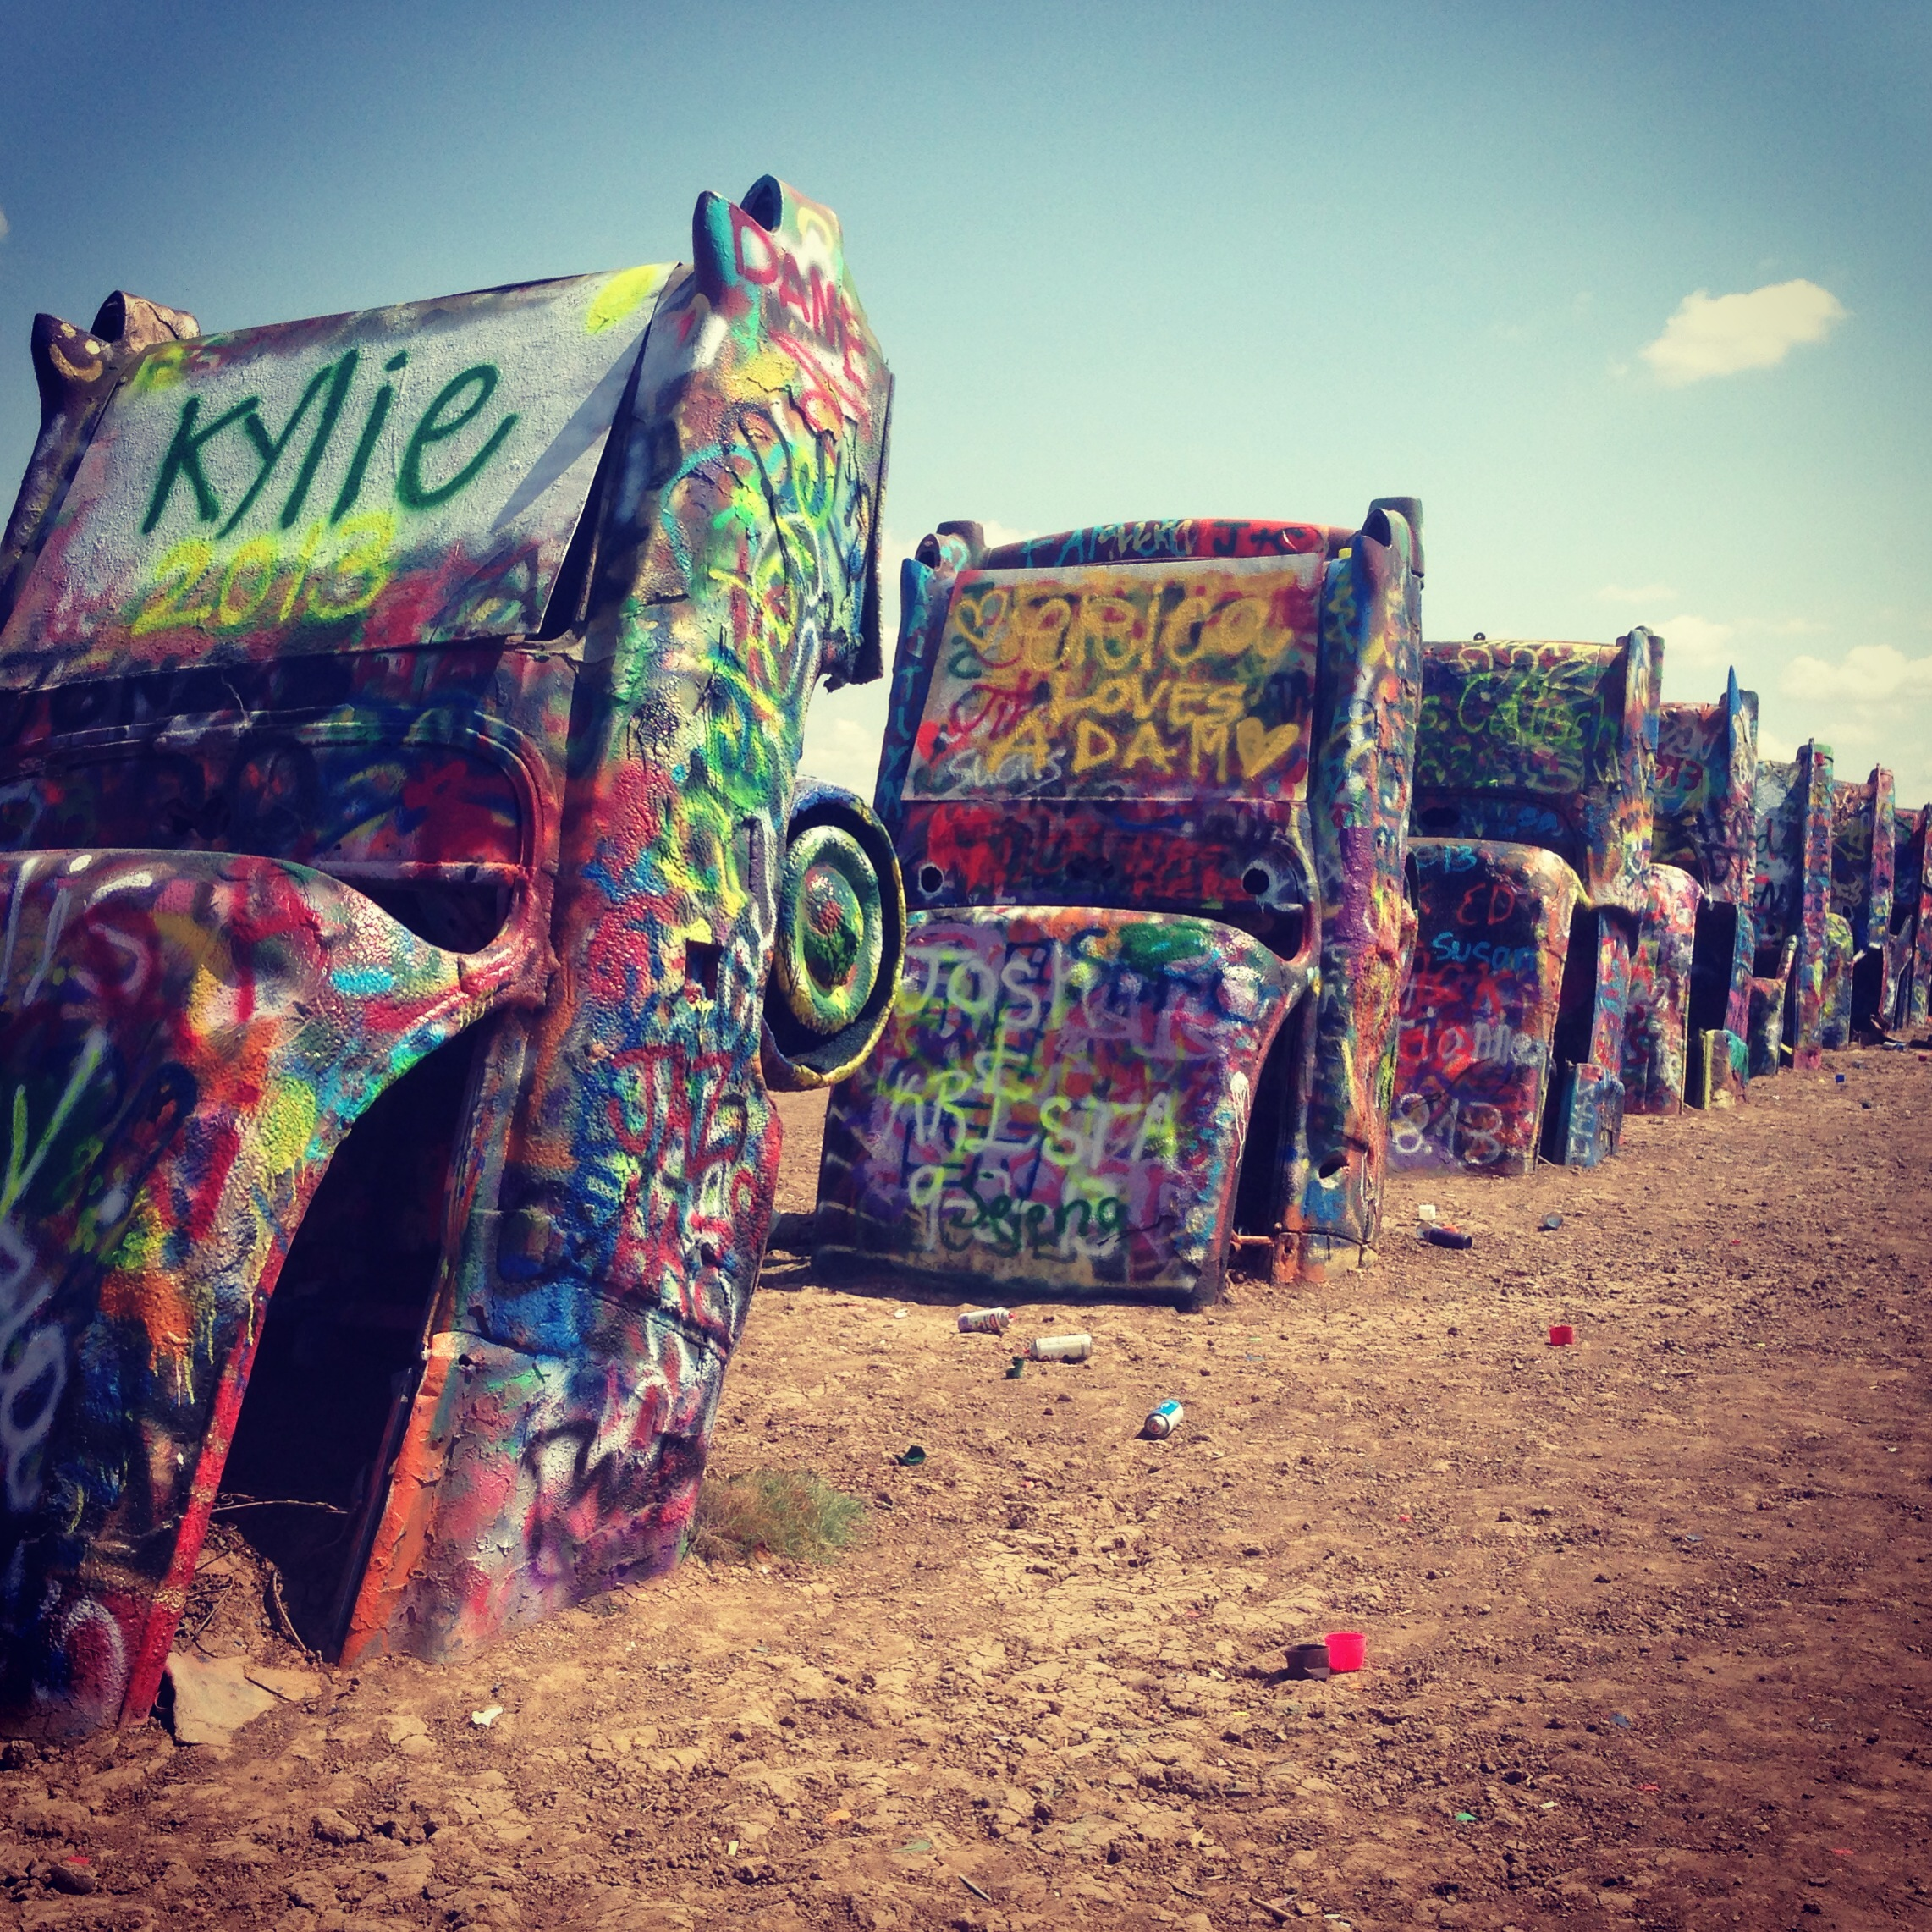 After driving back and forth across the country 5 times, we finally stopped at the Cadillac Ranch in Amarillo, Texas